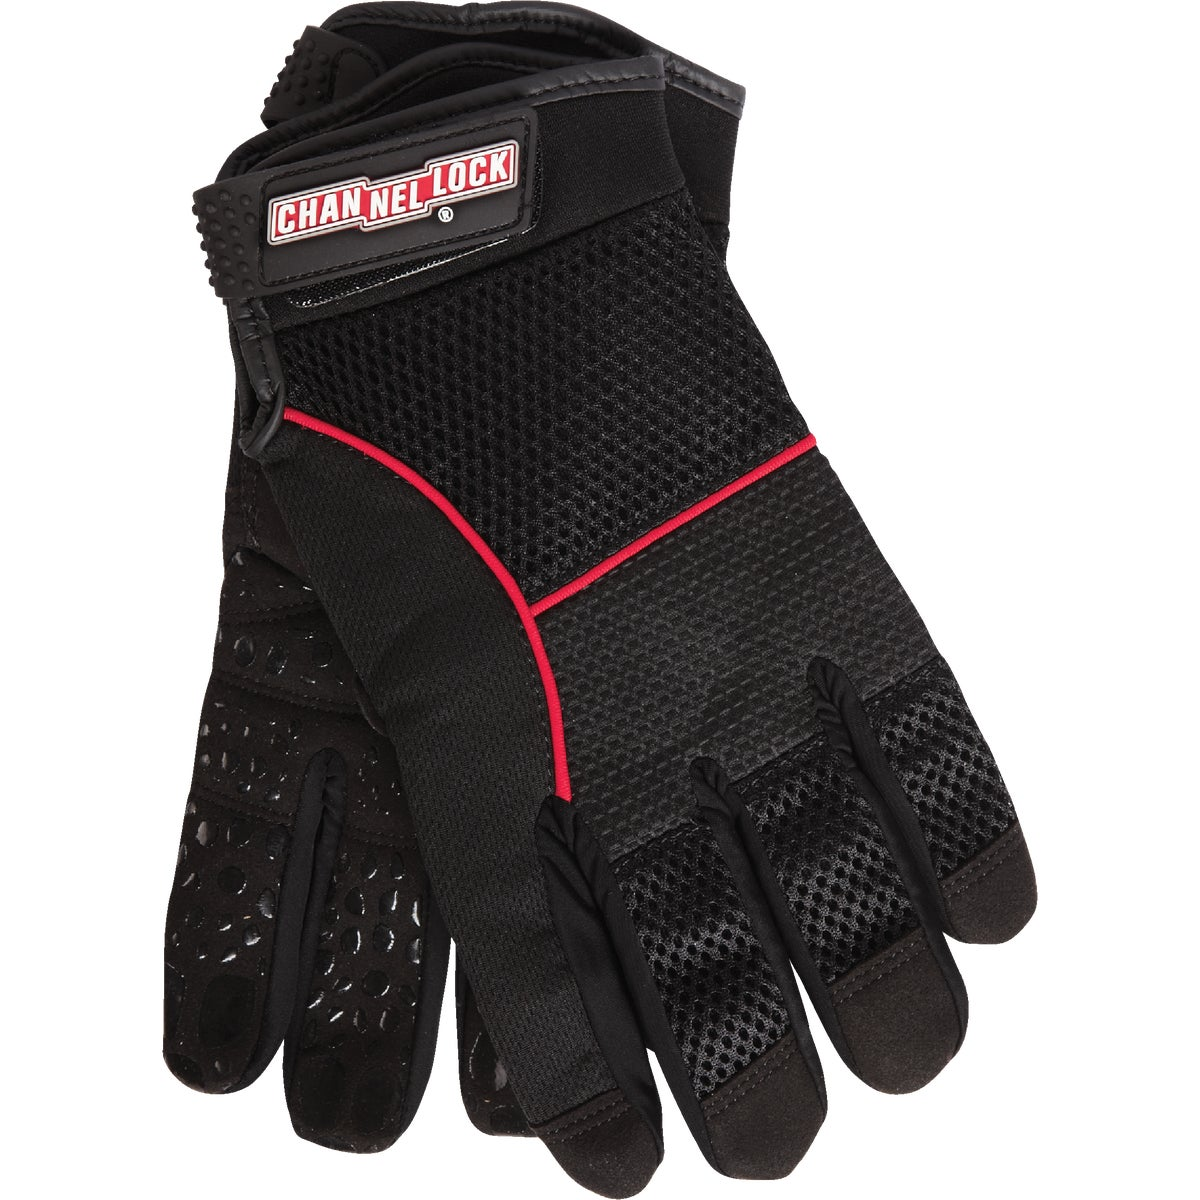 MENS XL PRO GRIP GLOVE - 760539 by Channellock®